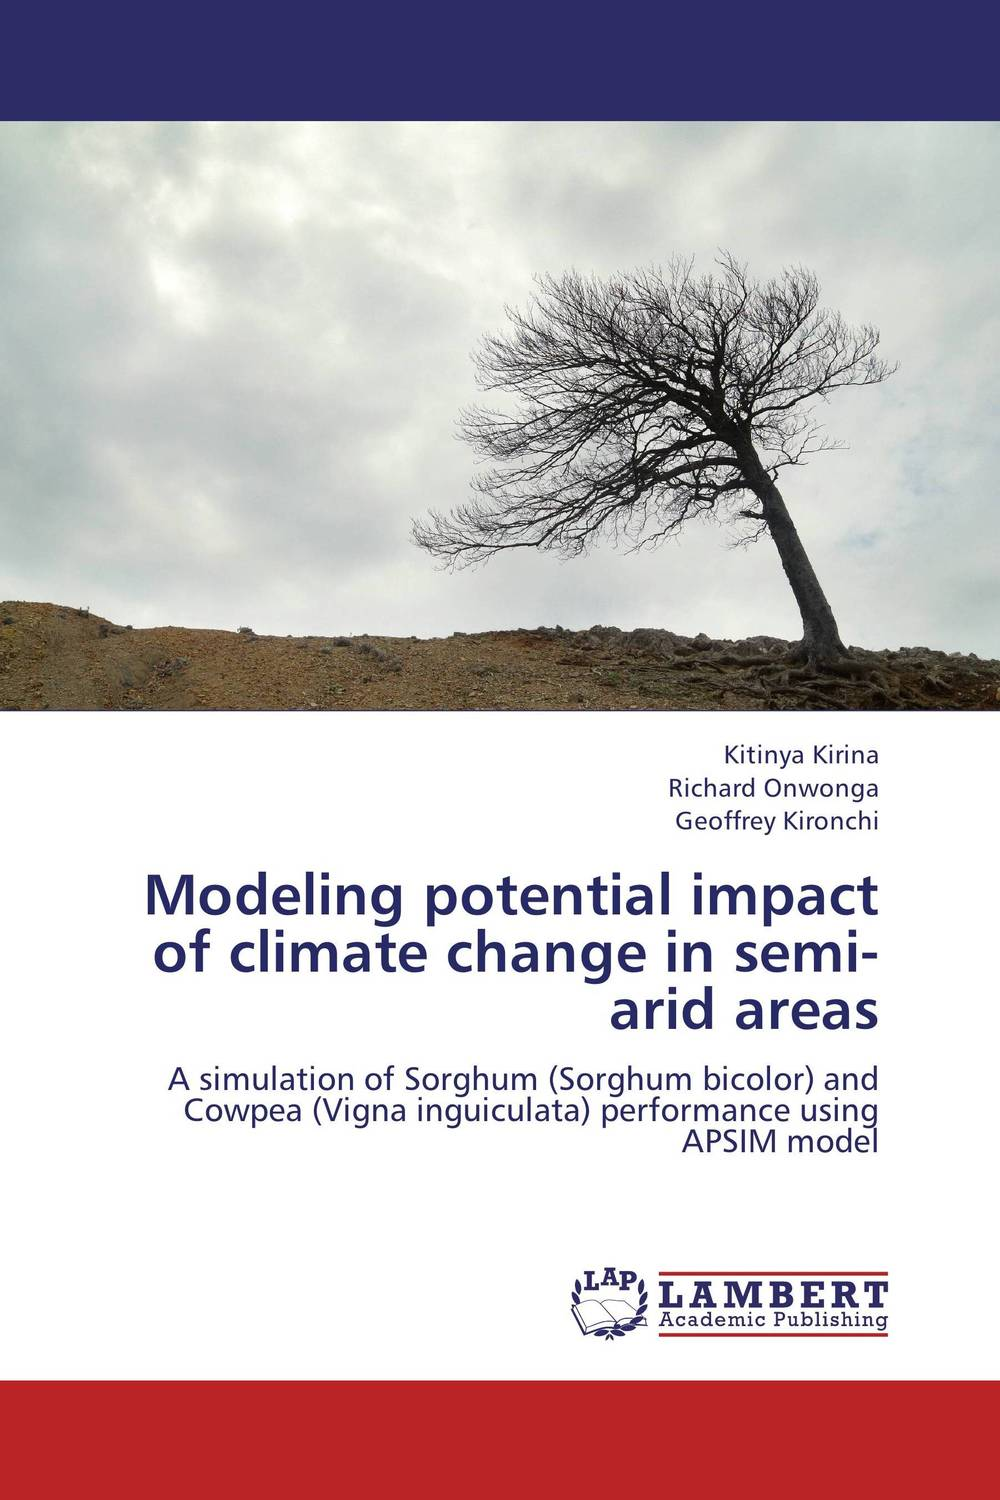 Modeling potential impact of climate change in semi-arid areas farm level adoption of water system innovations in semi arid areas